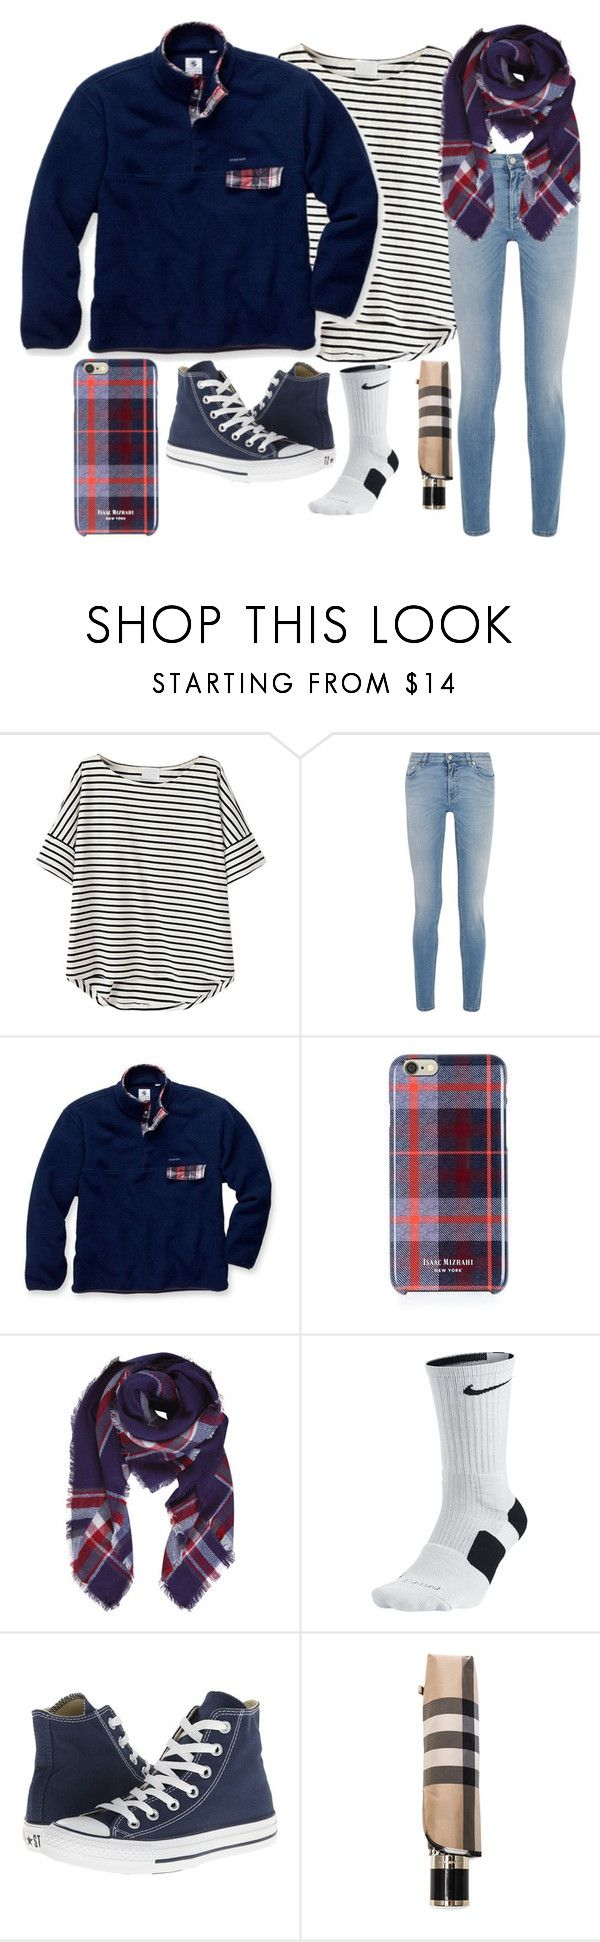 """Today's School Outfit"" by thesabriner ❤ liked on Polyvore featuring Givenchy, Southern Proper, Isaac Mizrahi, Humble Chic, NIKE, Converse and Burberry"